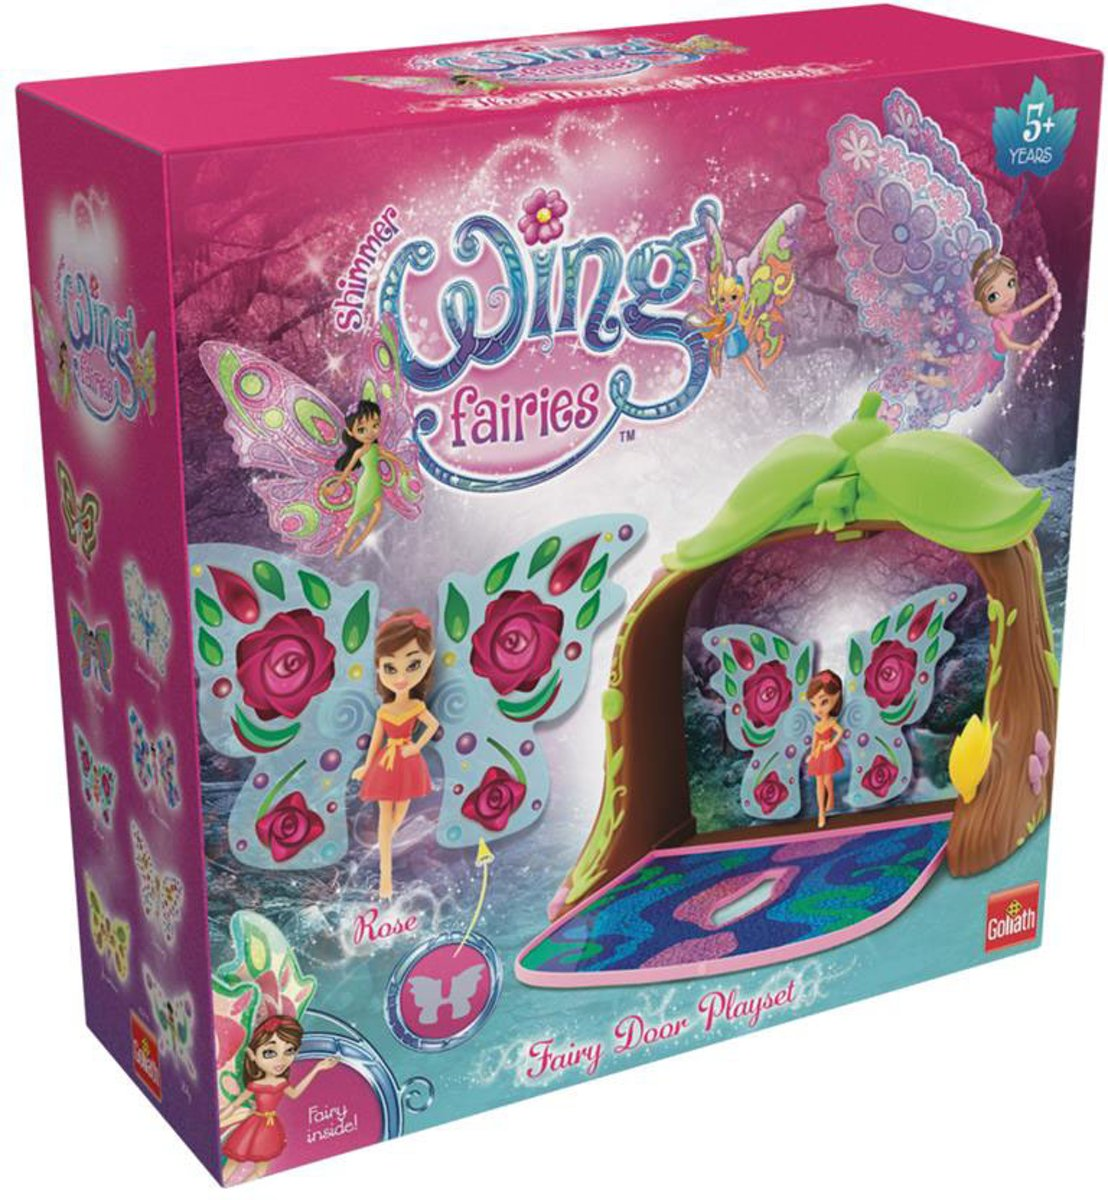 Shimmer Wing Fairies, Fairy Doors Playset (ML)